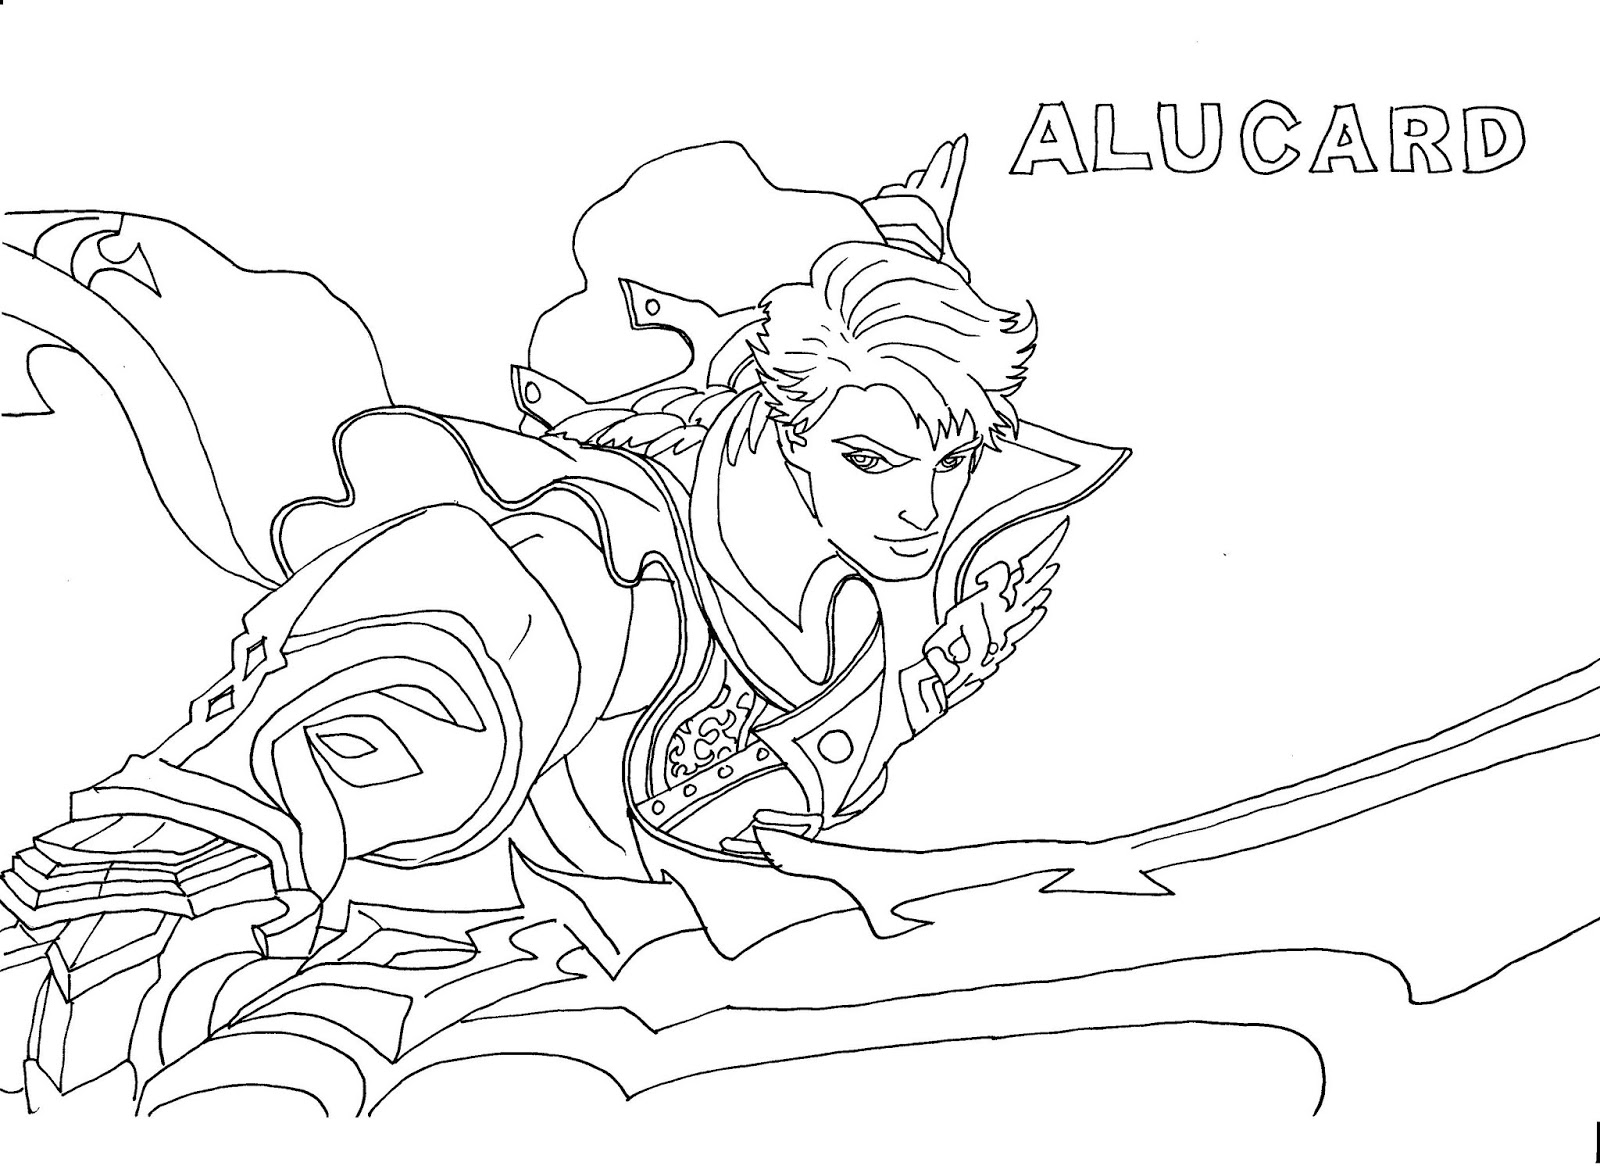 coloring with legend the legend of zelda coloring download the legend of zelda legend with coloring